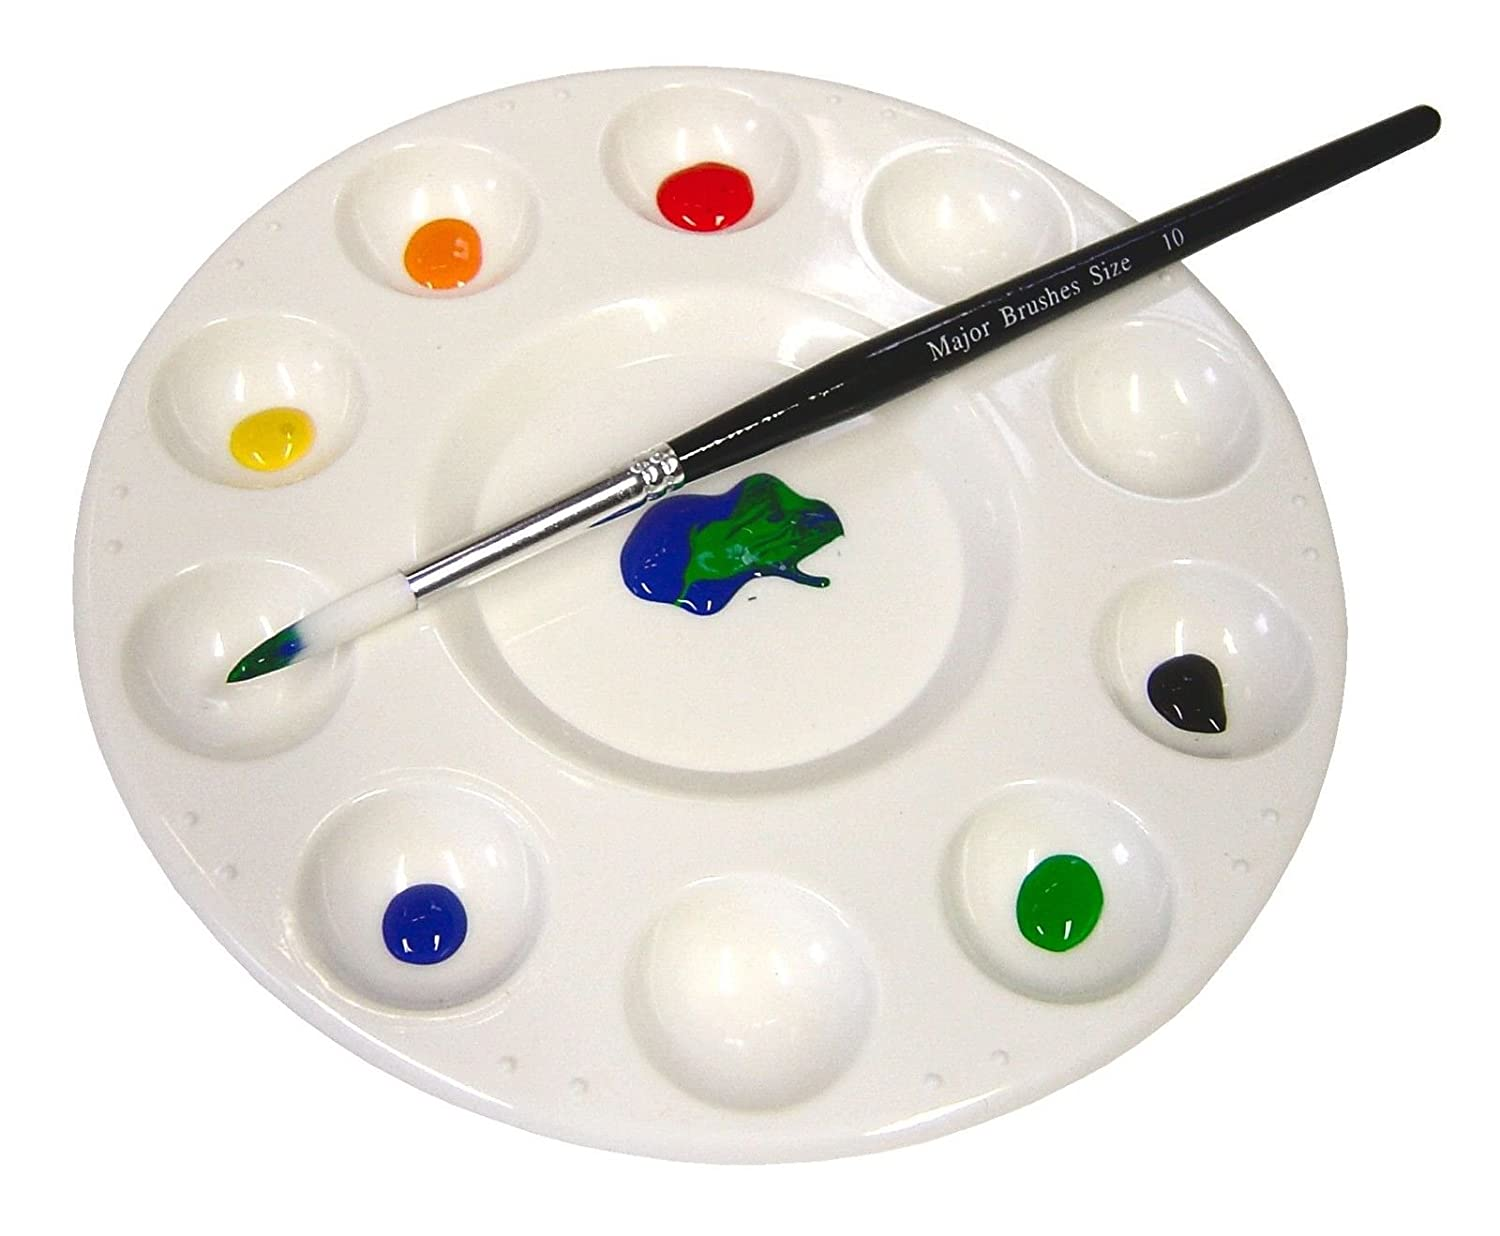 10 Well Round Artist Paint Colour Mixing Palette for Watercolours Oils Acrylics Major Brushes